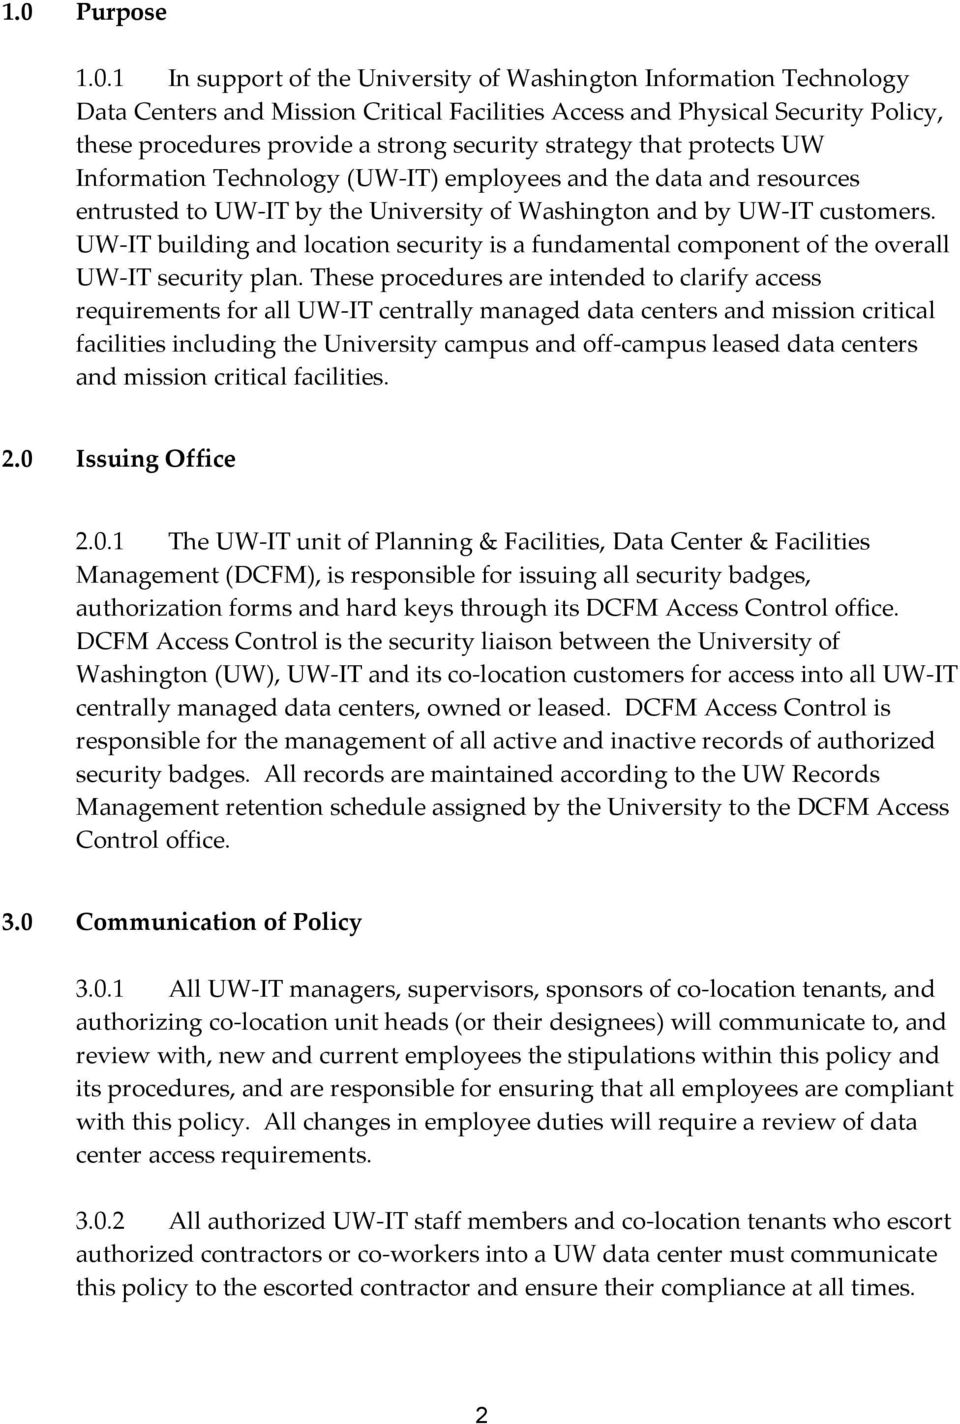 UW-IT building and location security is a fundamental component of the overall UW-IT security plan.